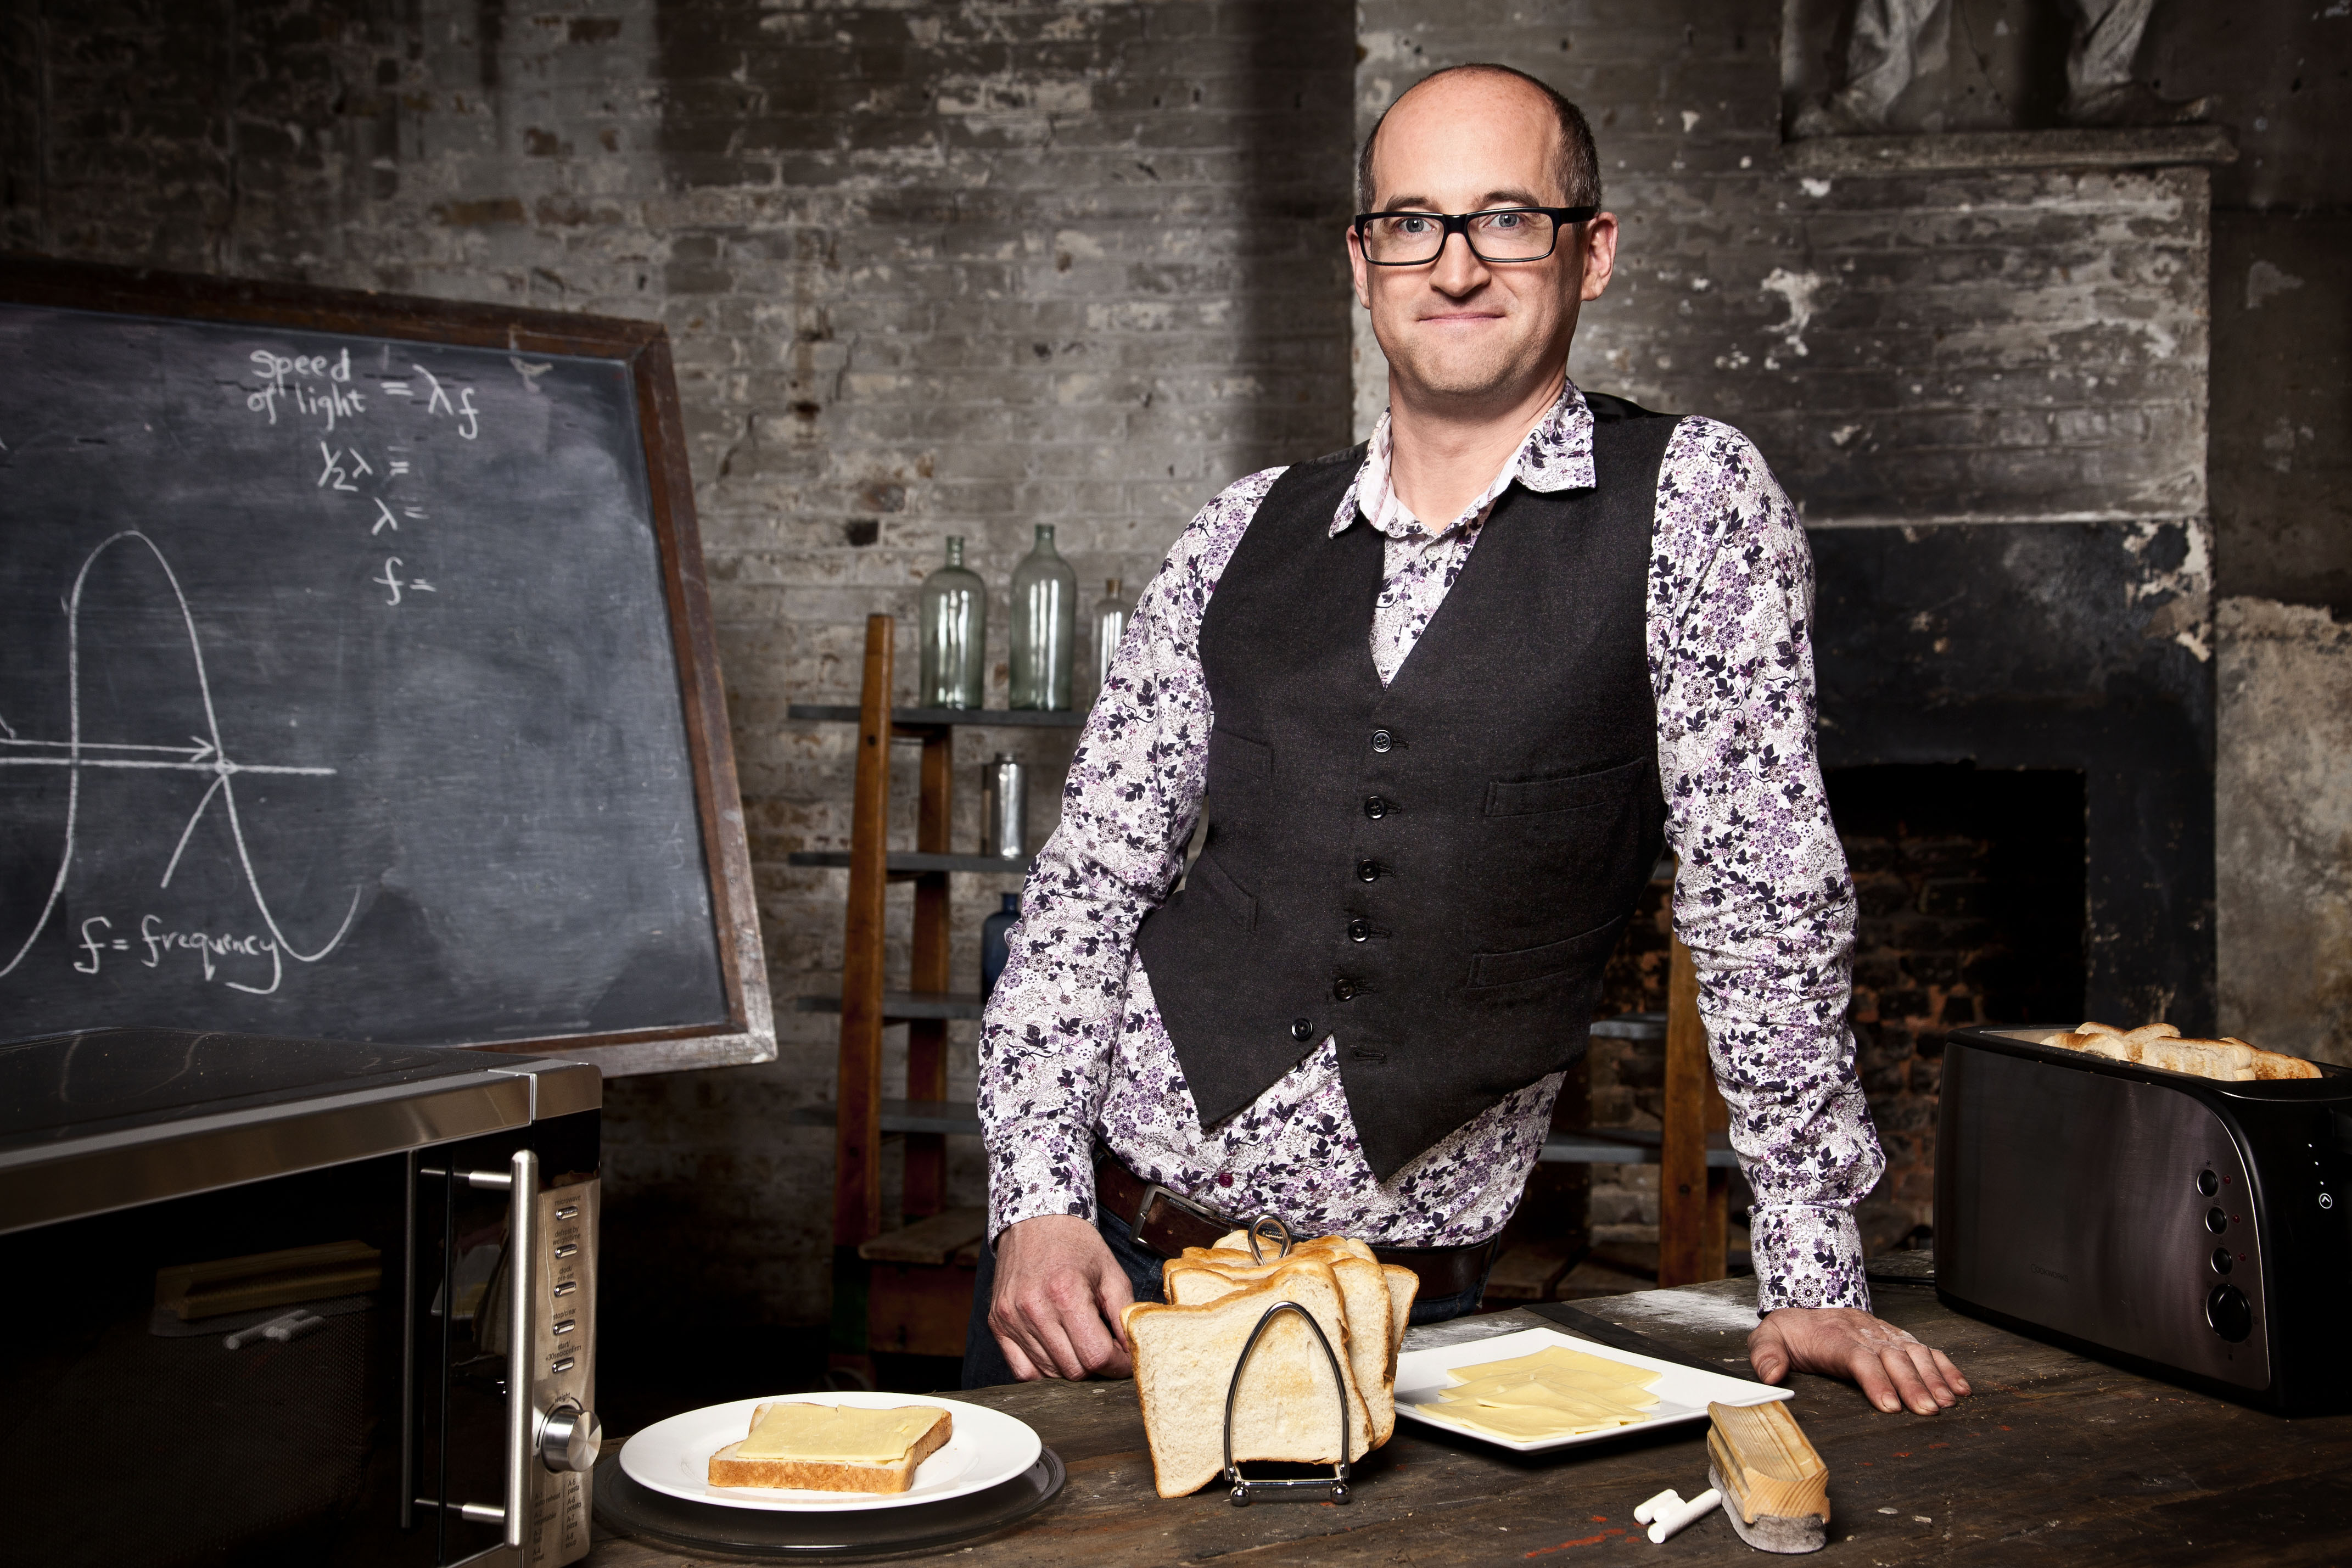 Mark Miodownik, measures the speed of light using cheese on toast.